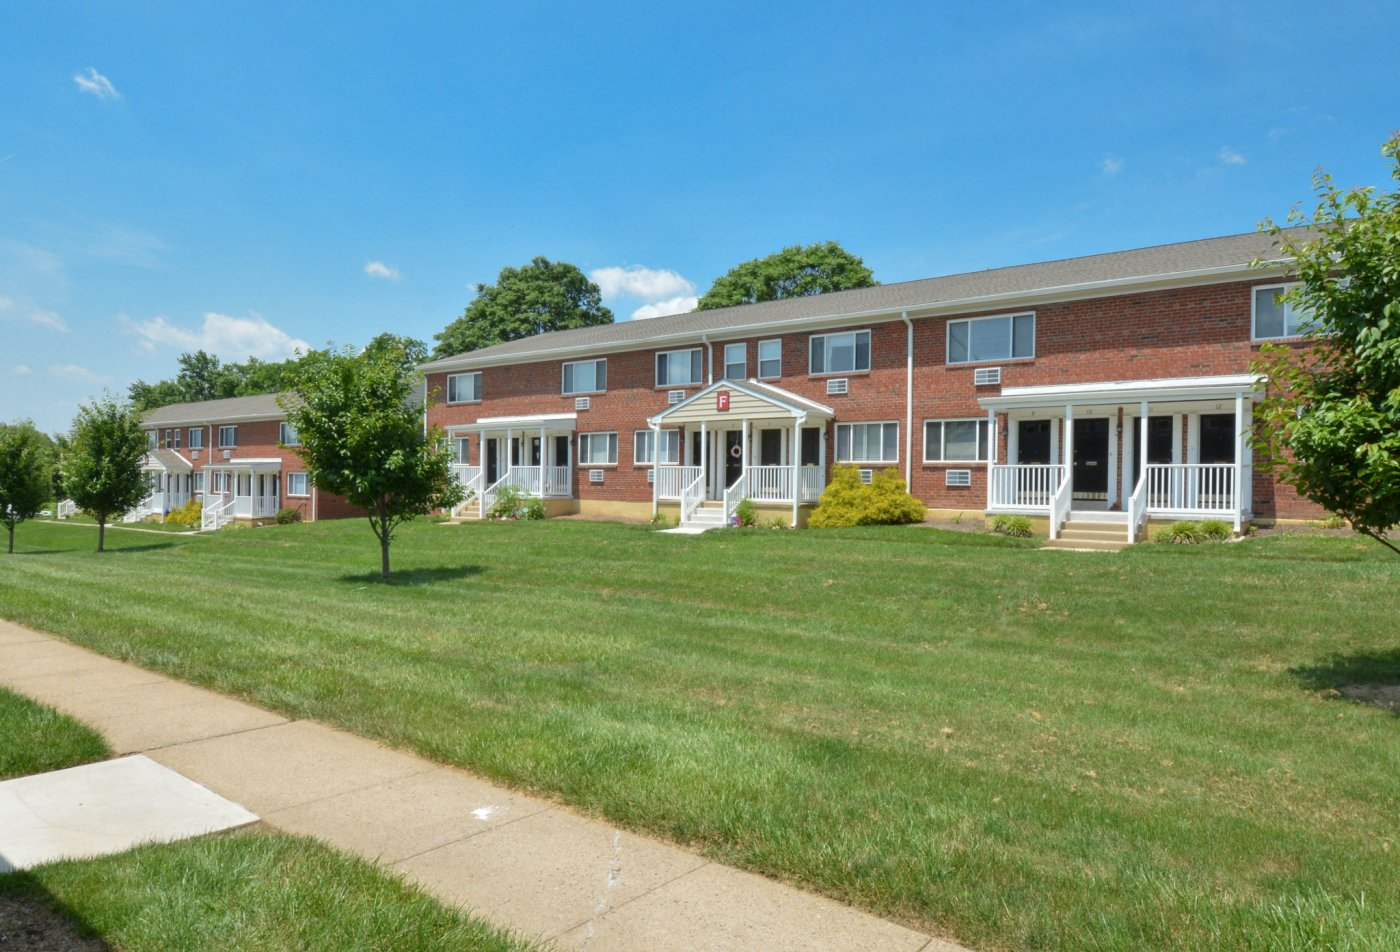 Apartment Homes in Aston, PA | Concord Court Apartments